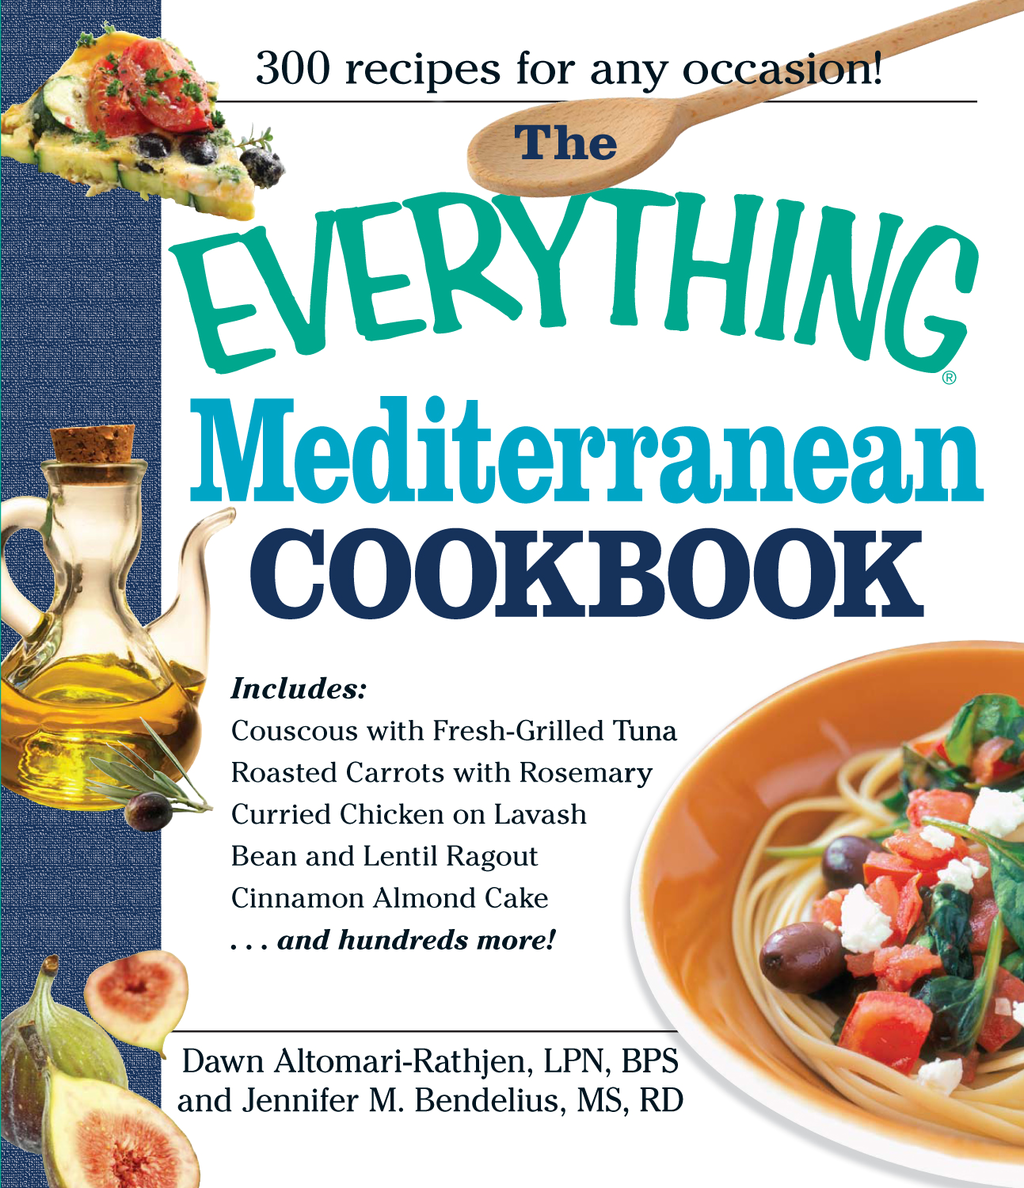 The Everything Mediterranean Cookbook: An Enticing Collection of 300 Healthy, Delicious Recipes from the Land of Sun and Sea